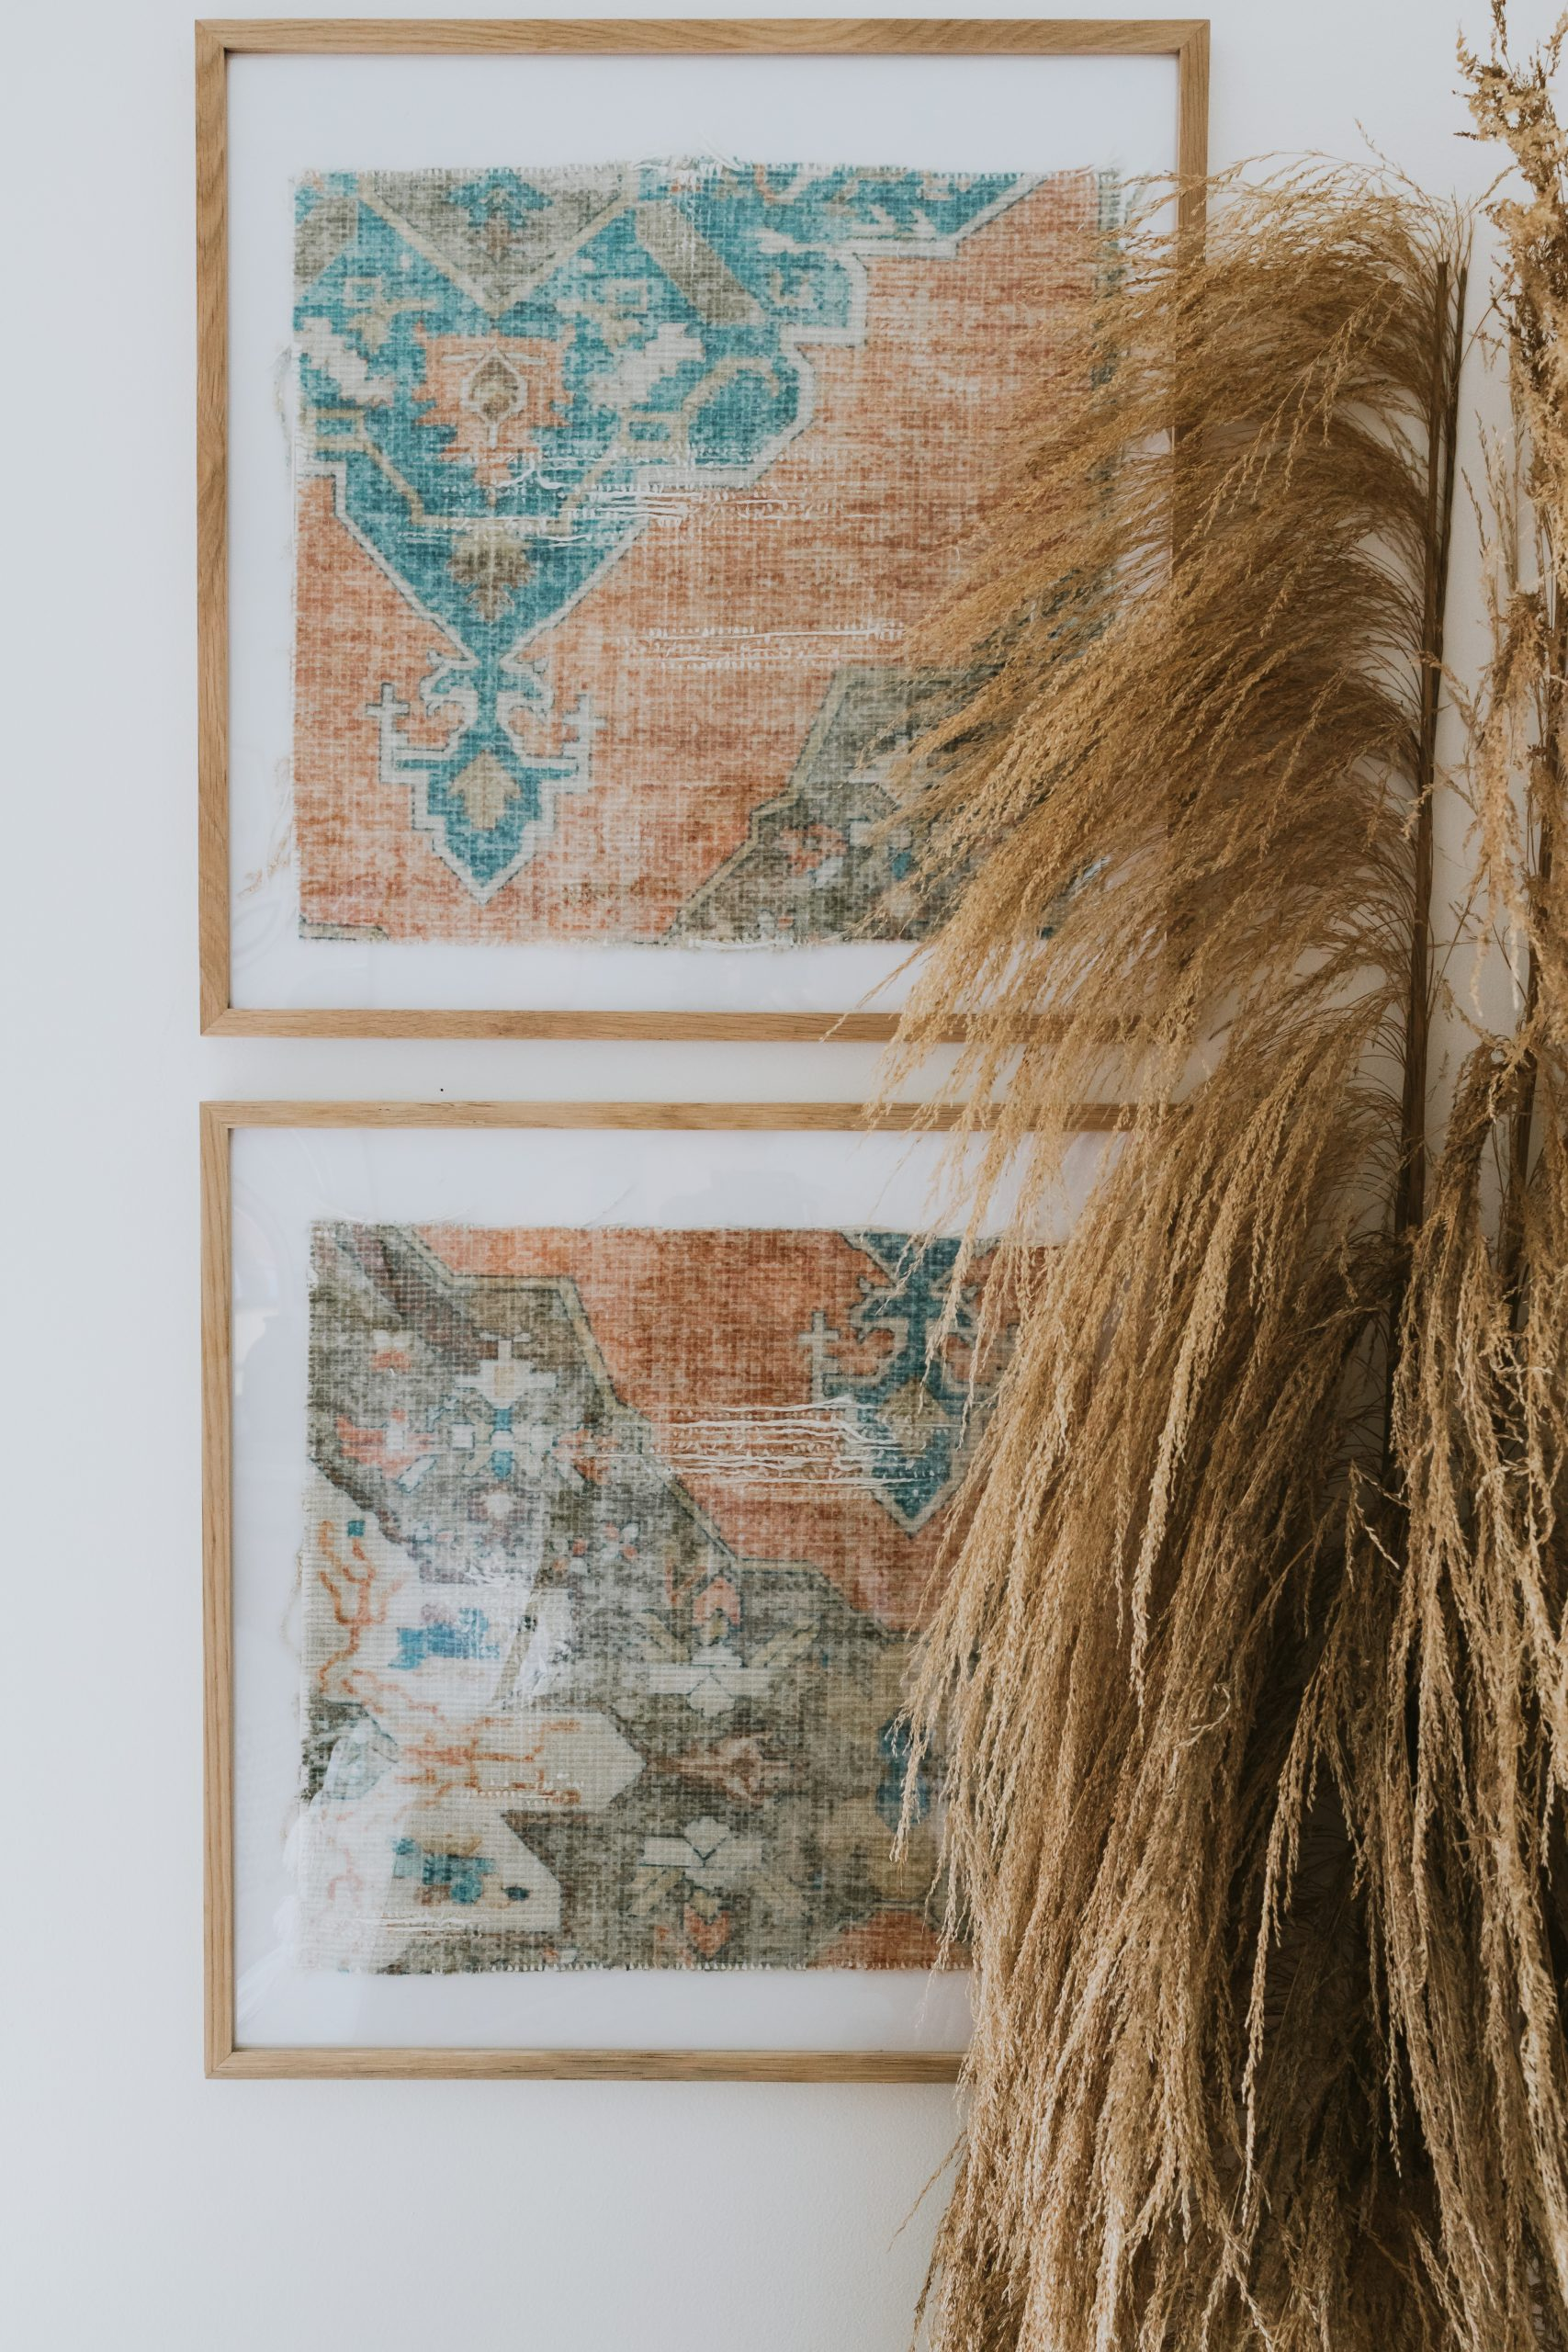 DIY Rug Art Inspired by McGee and Co Vintage Framed Rug. How I distressed and made my rug super old and distressed looking to replicate a vintage rug. Also a shop list for the frames I used and where to buy cheap kilm pillows to use.